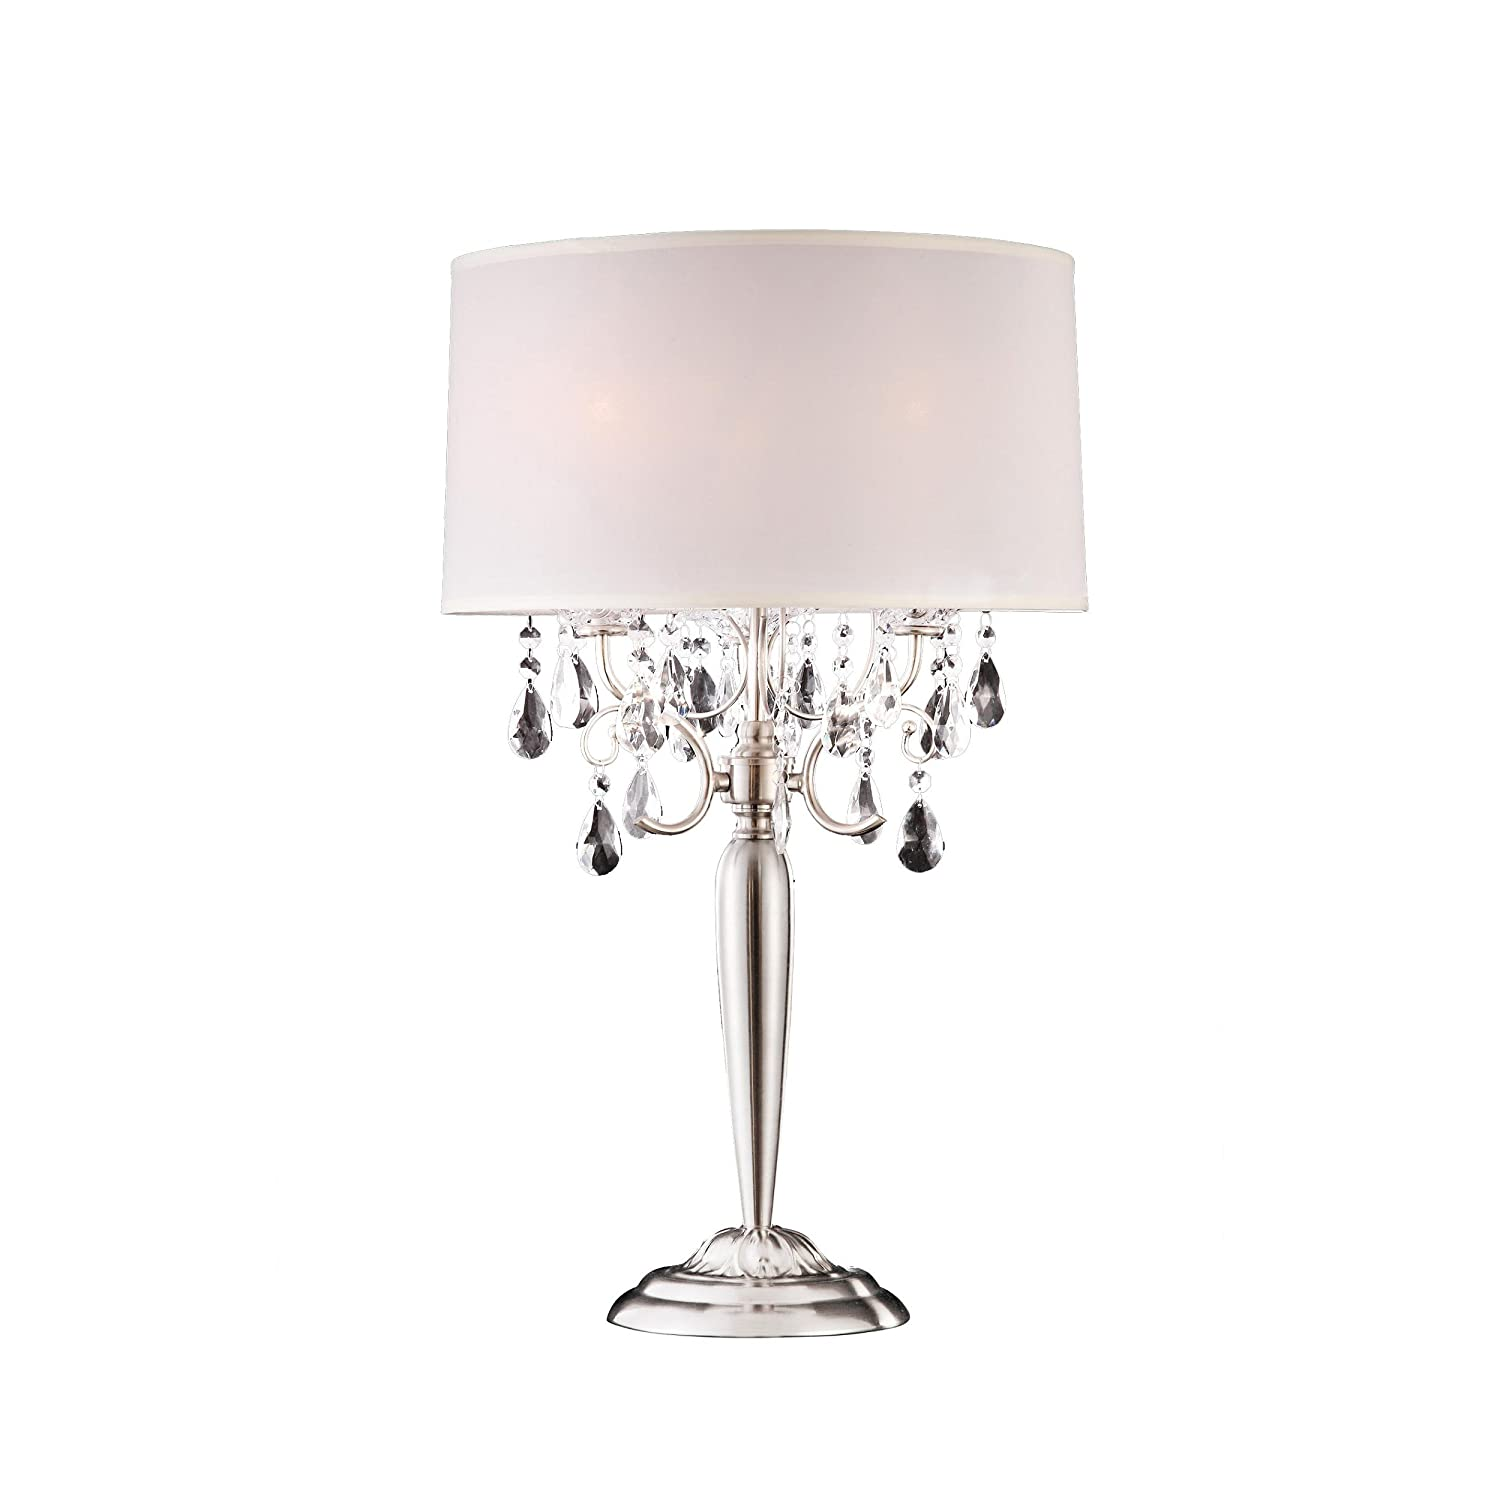 lamp com house amazon dp elegant table silver surpars crystal lamps